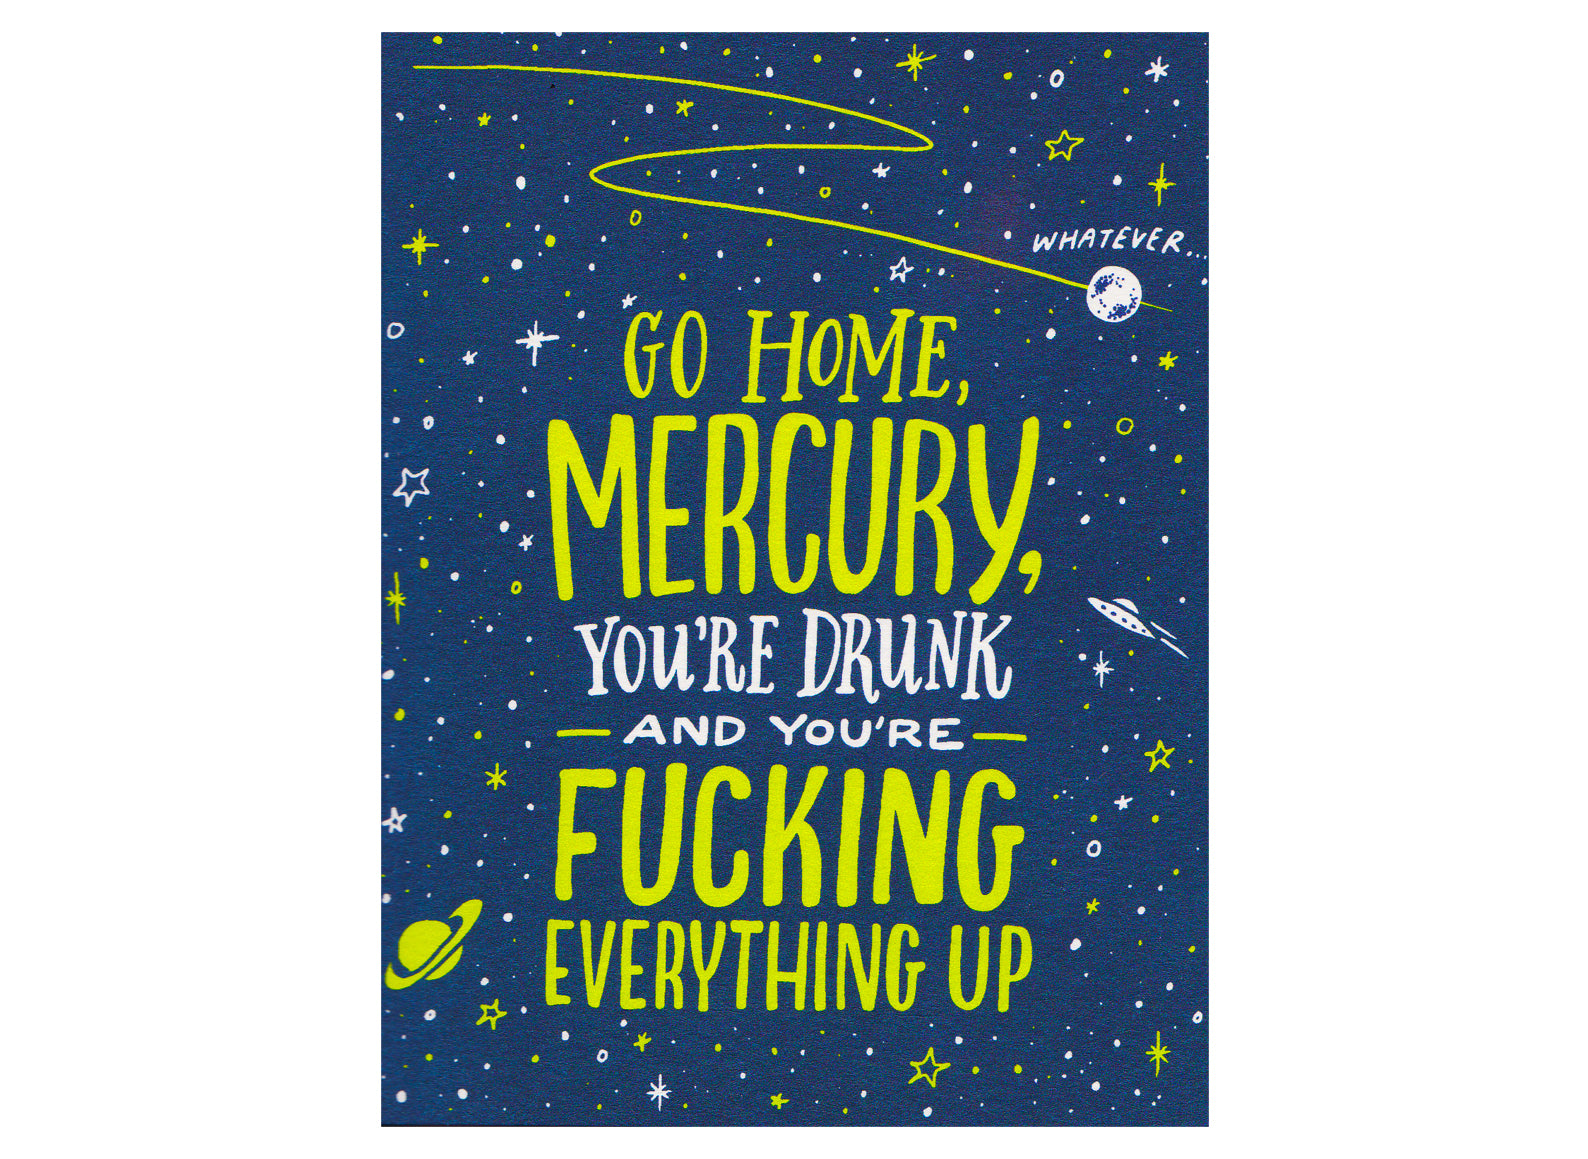 GO HOME MERCURY...